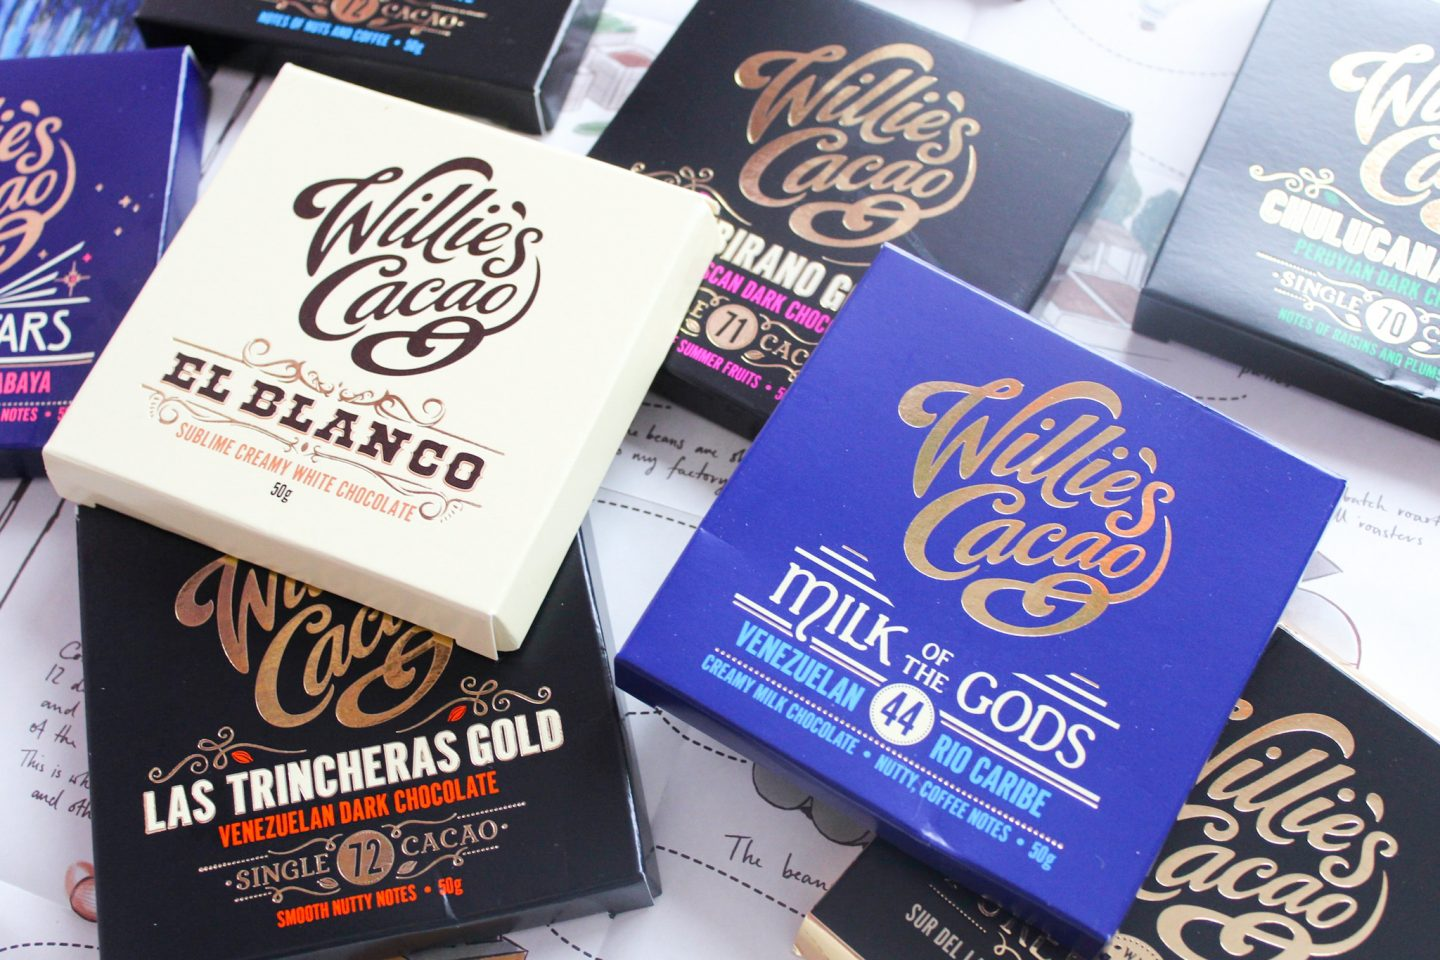 Willie's Cacao Chocolate Revolution | Single Estate Discovery Pack Giveaway